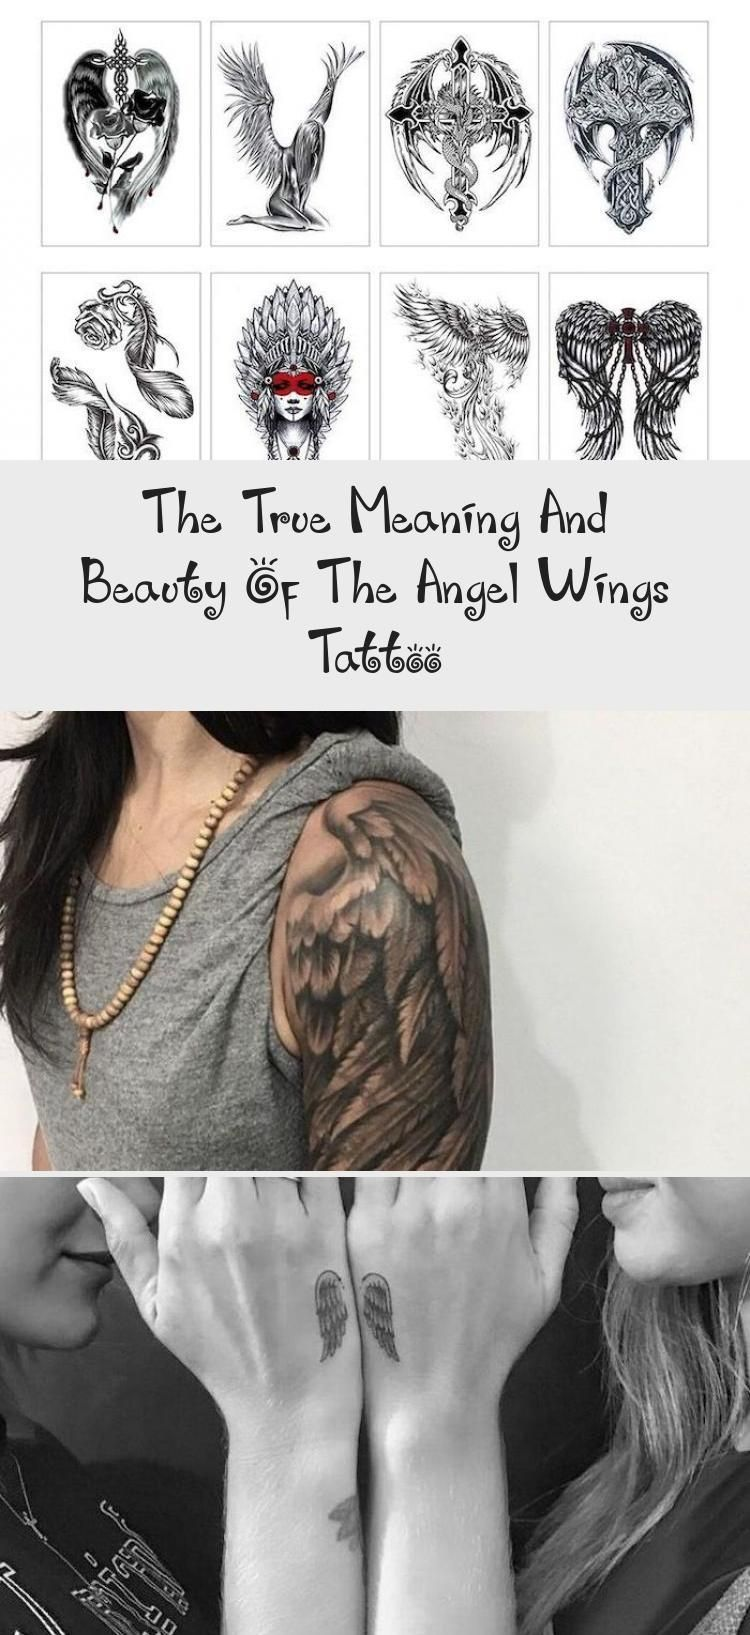 The True Meaning And Beauty Of The Angel Wings Tattoo In 2020 Angel Wings Tattoo Beautiful Angel Tattoos Wings Tattoo